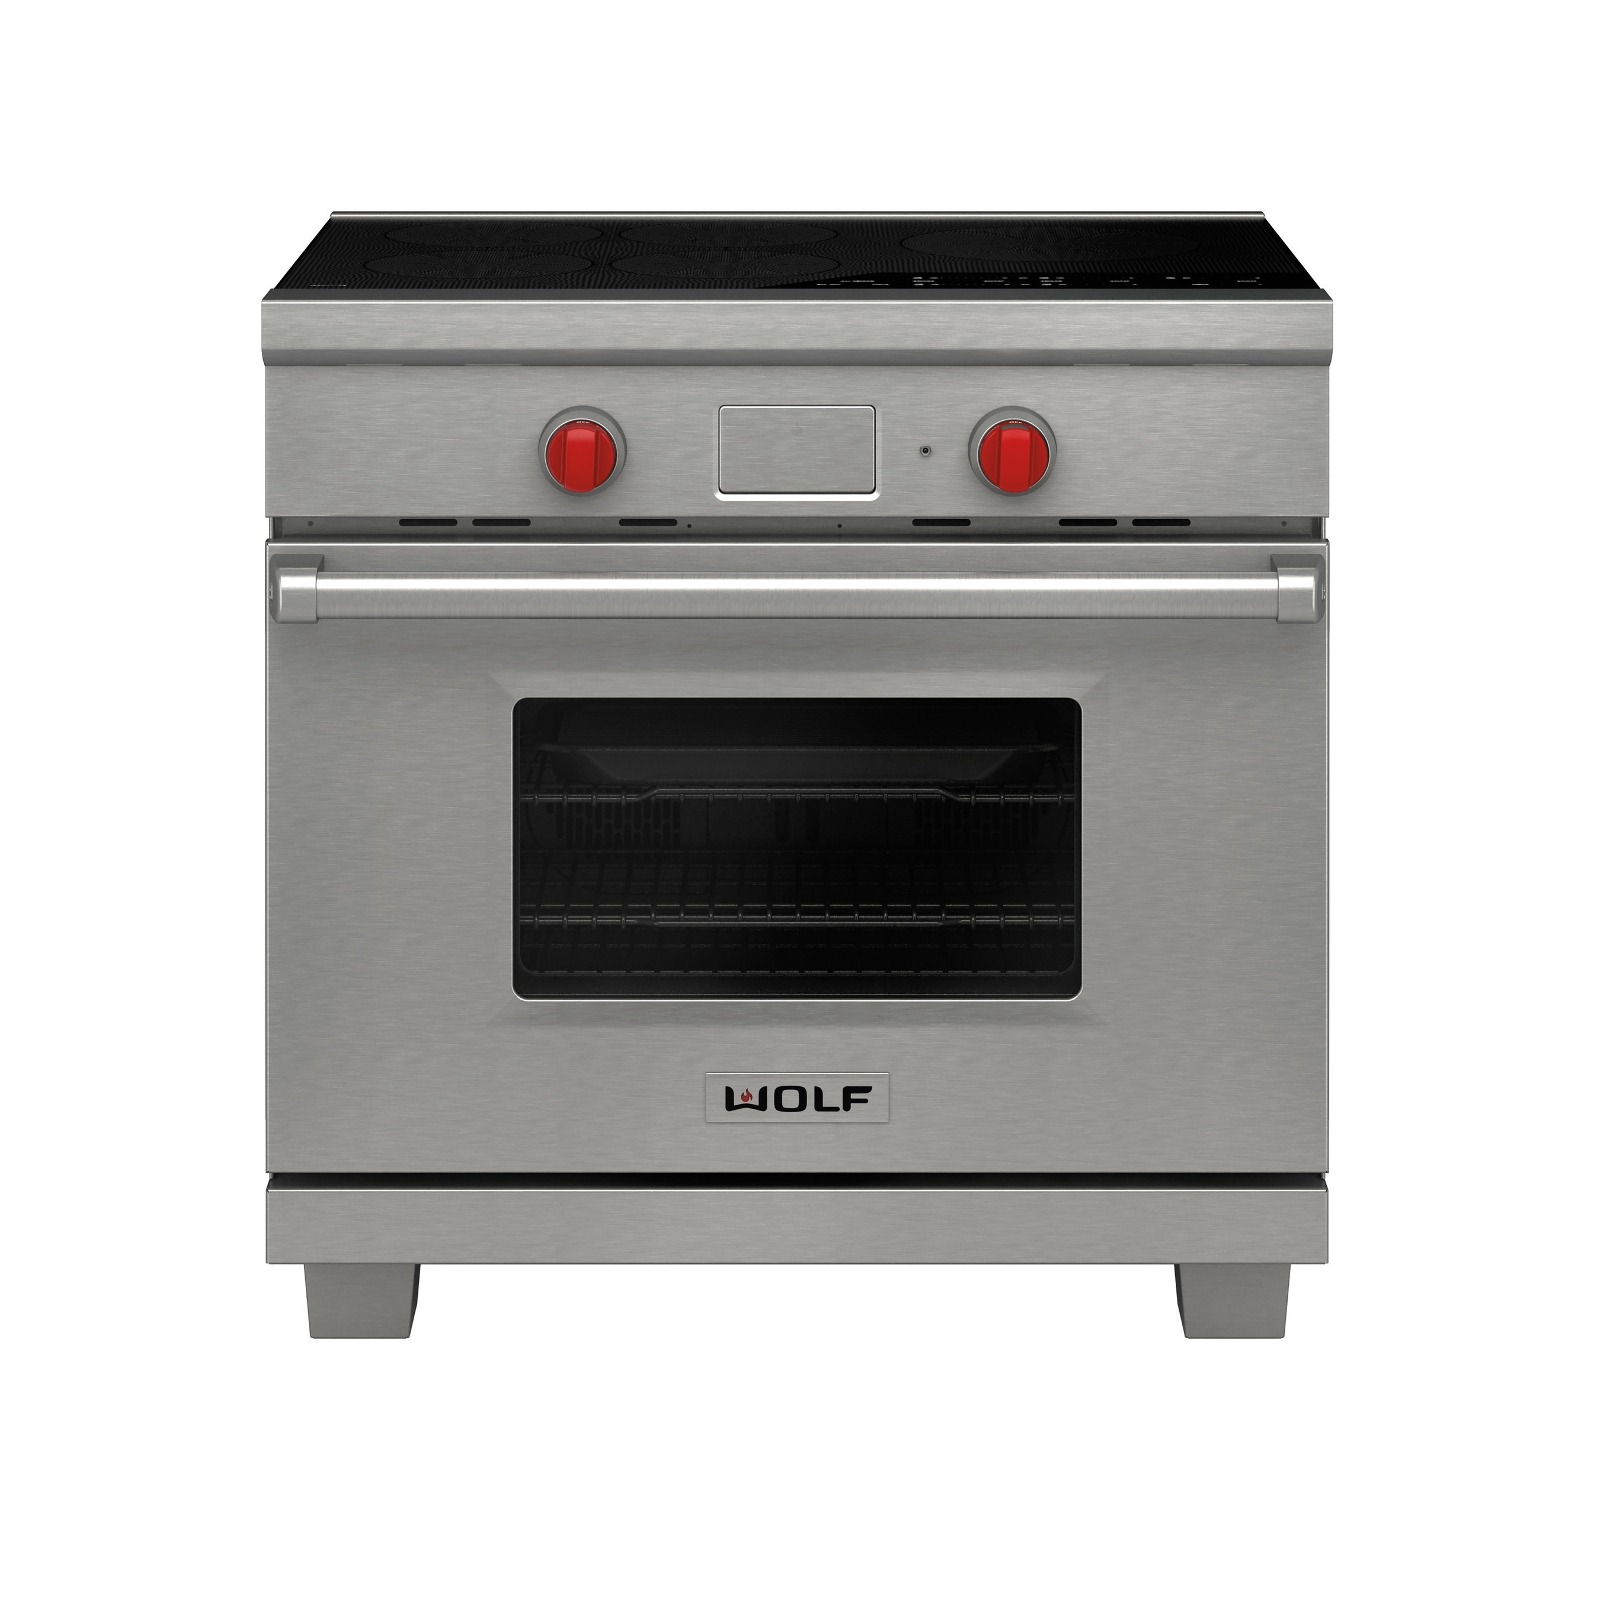 Induction Cooking Ranges ~ Household appliances archives page of kitchenware